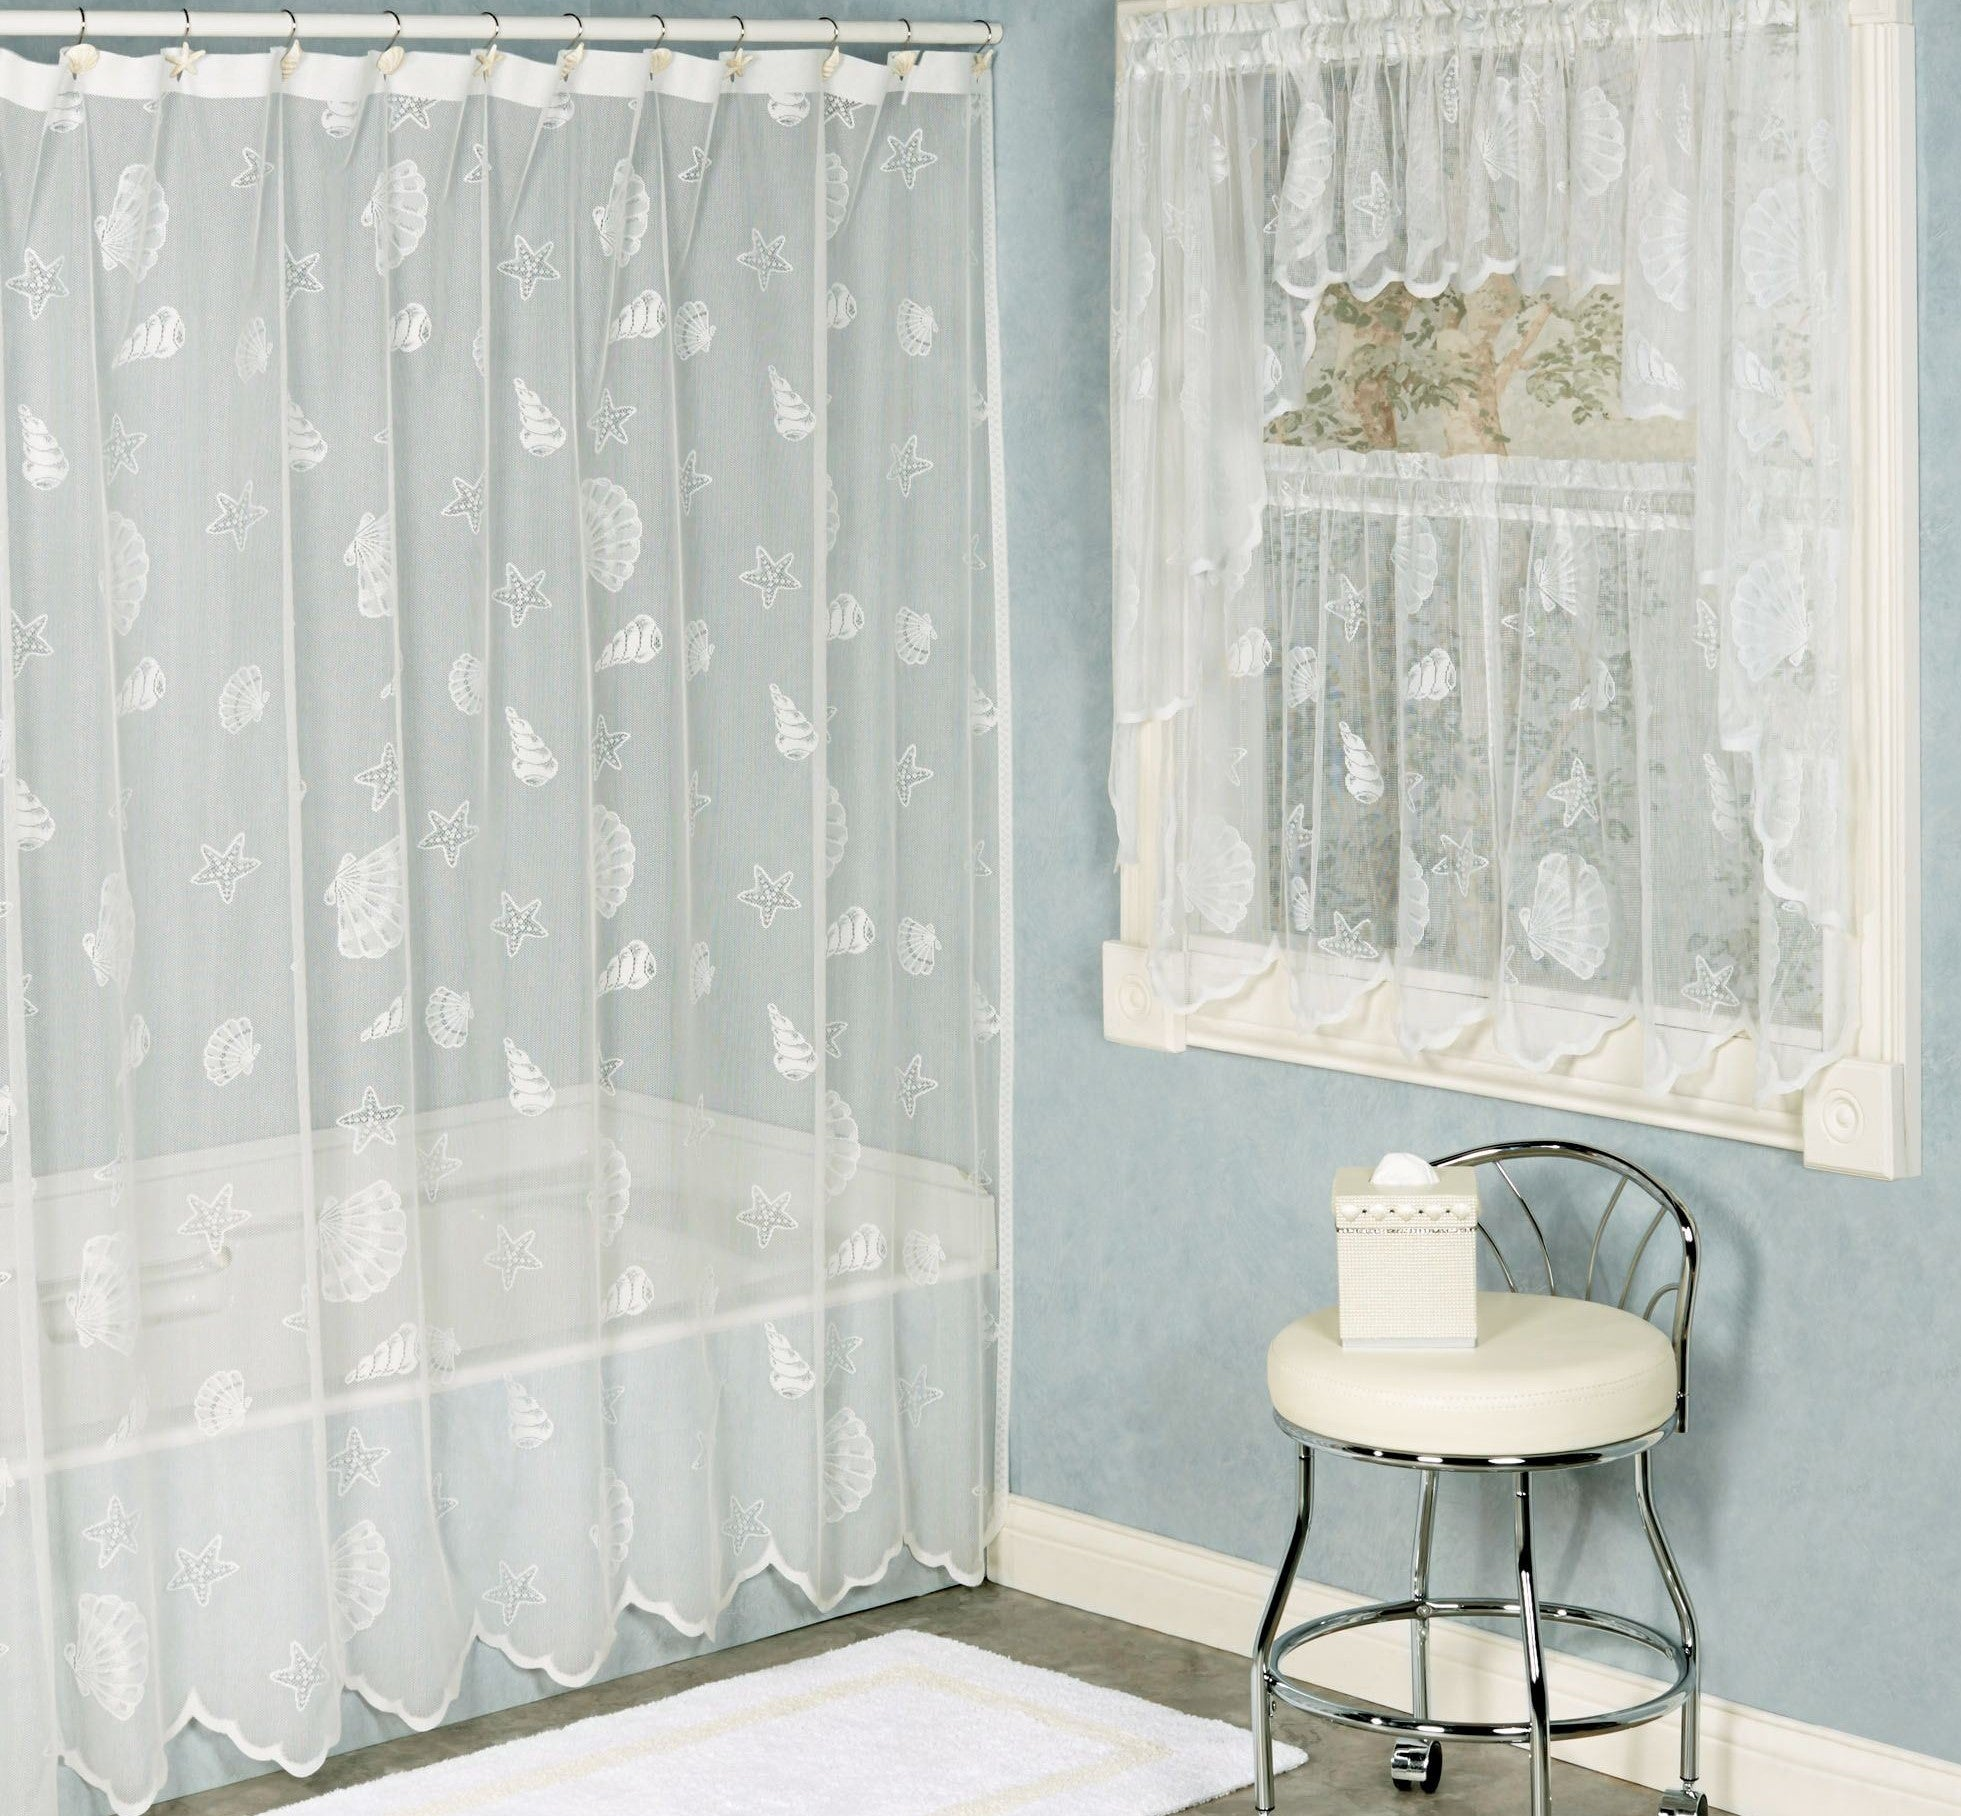 curtain nursery decor butterfly girls bathroom item shower vintage design for victorian polyester curtains ombre fabric grunge british